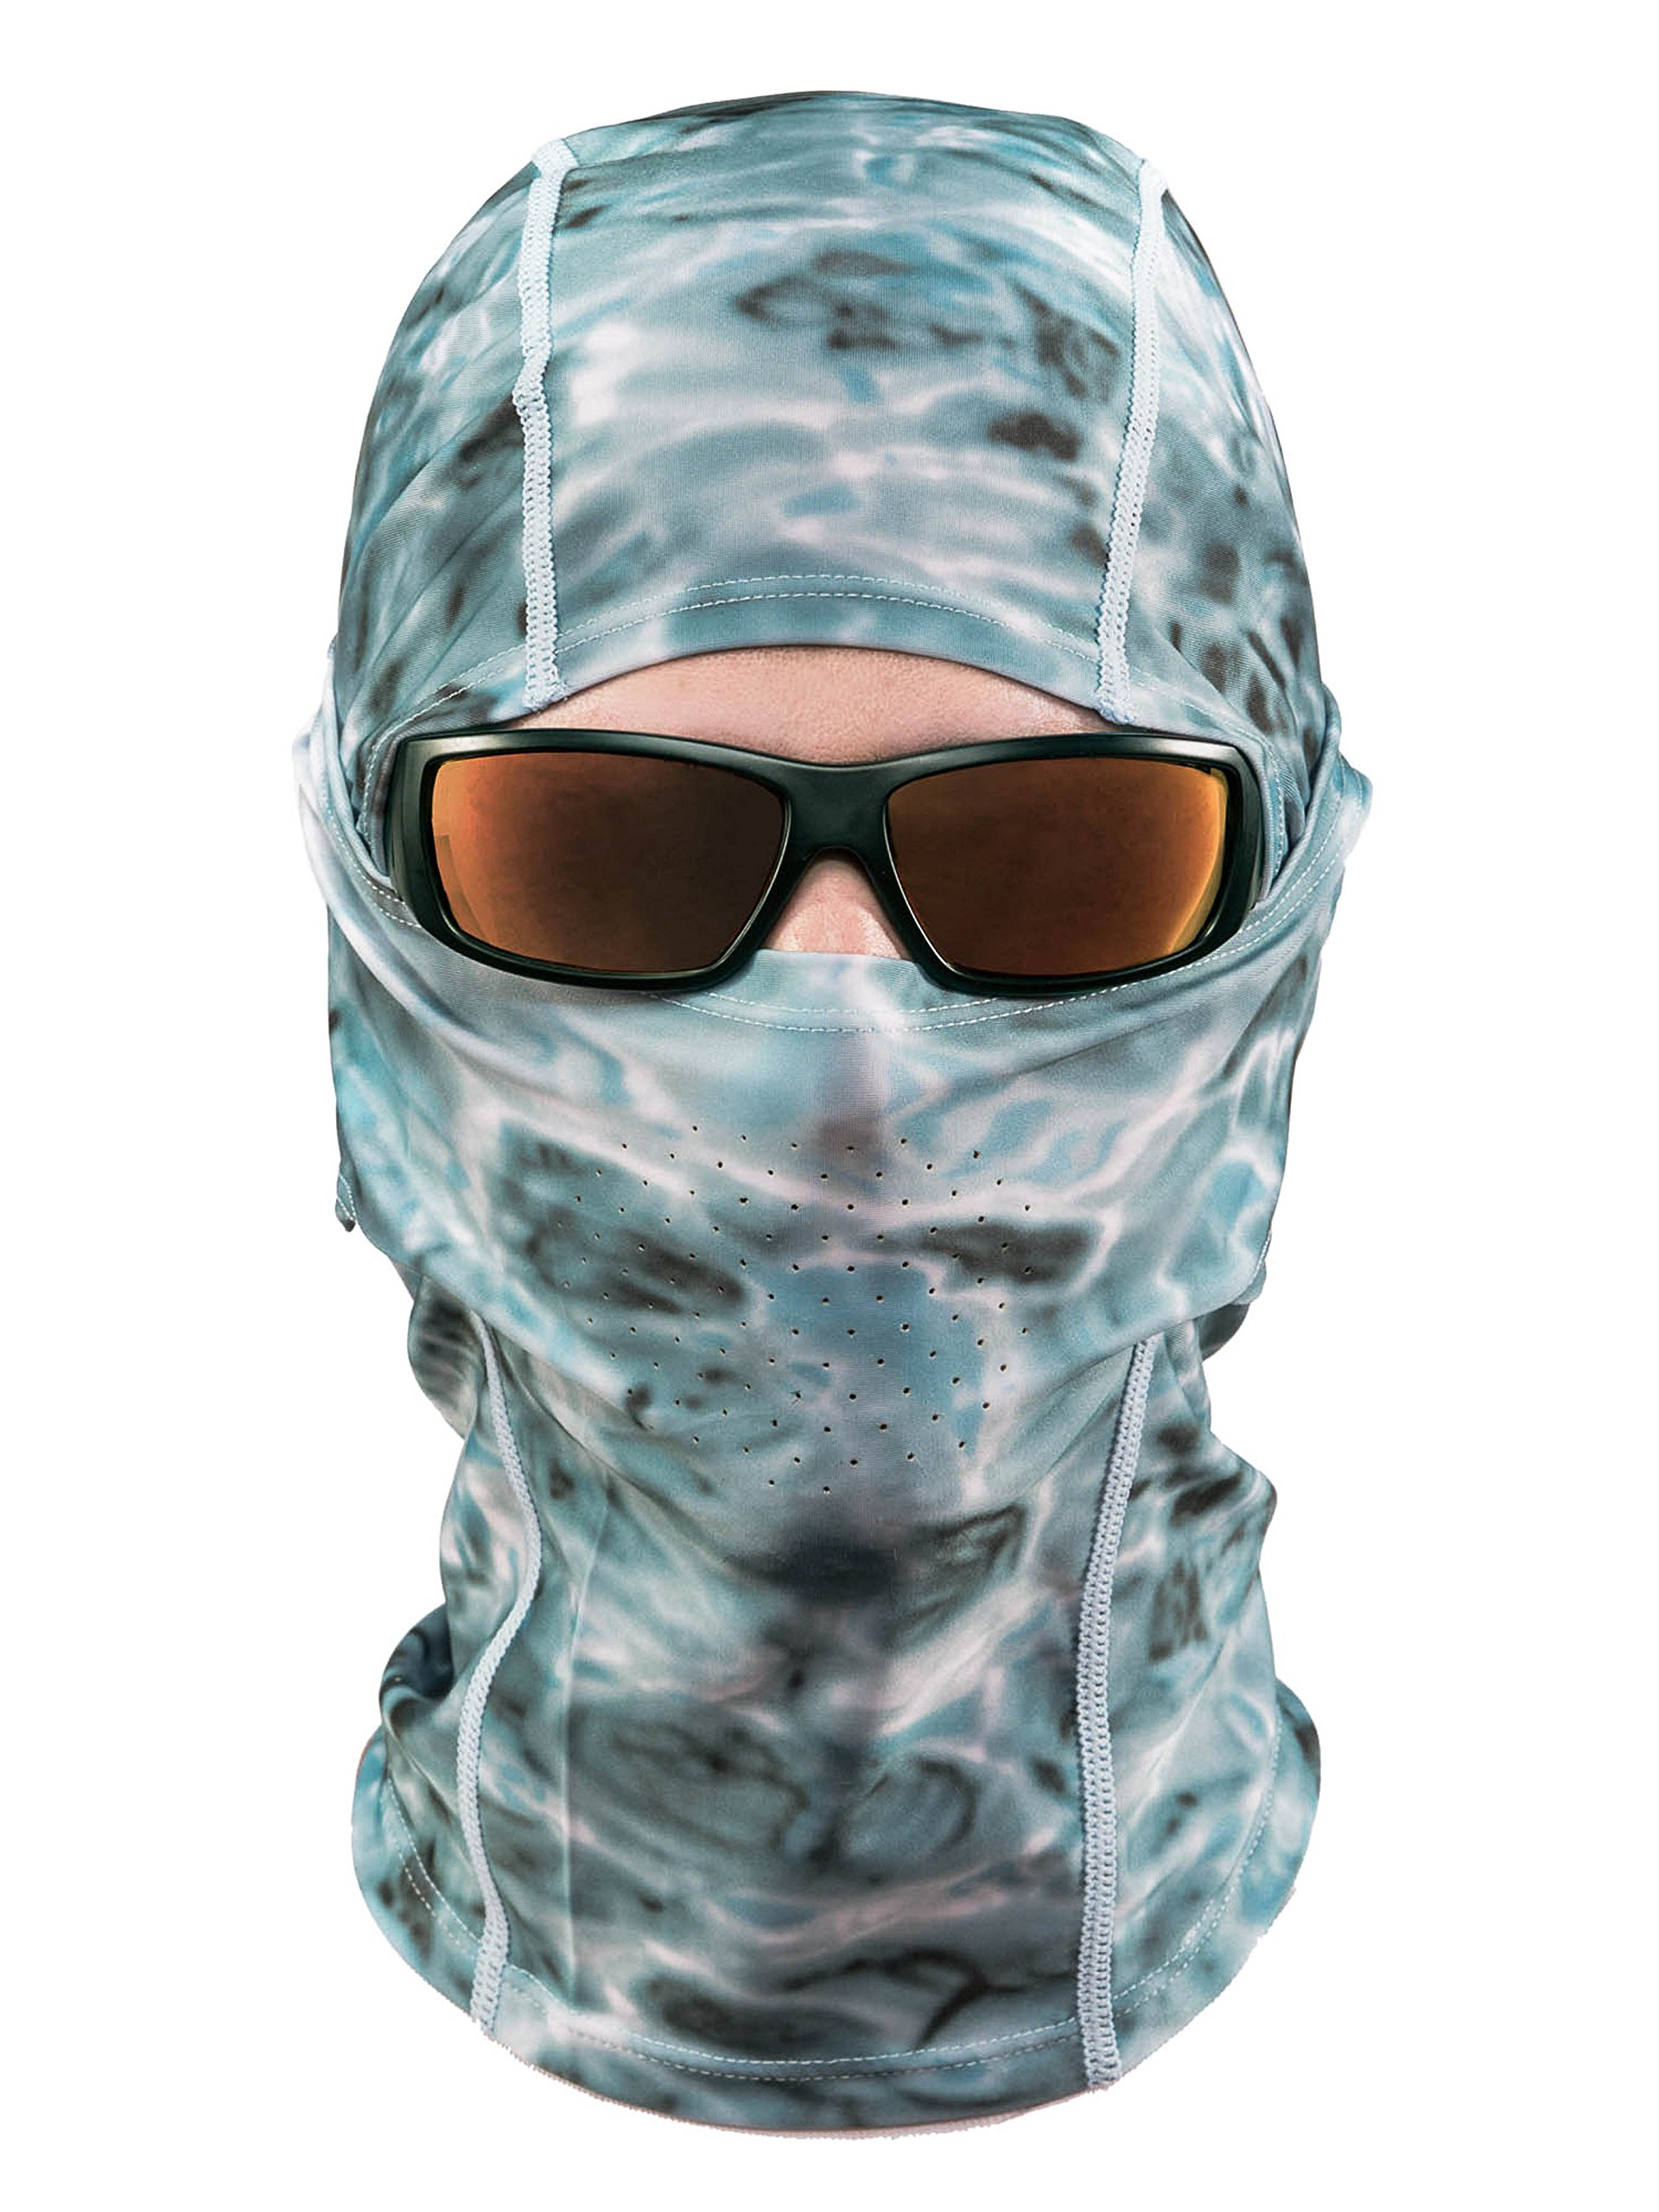 Aqua Design: Cool Weather Mens Face Mask UPF50+ Sun Wind Helmet Liner Balaclava: Aqua Sky by Aqua Design (Image #2)